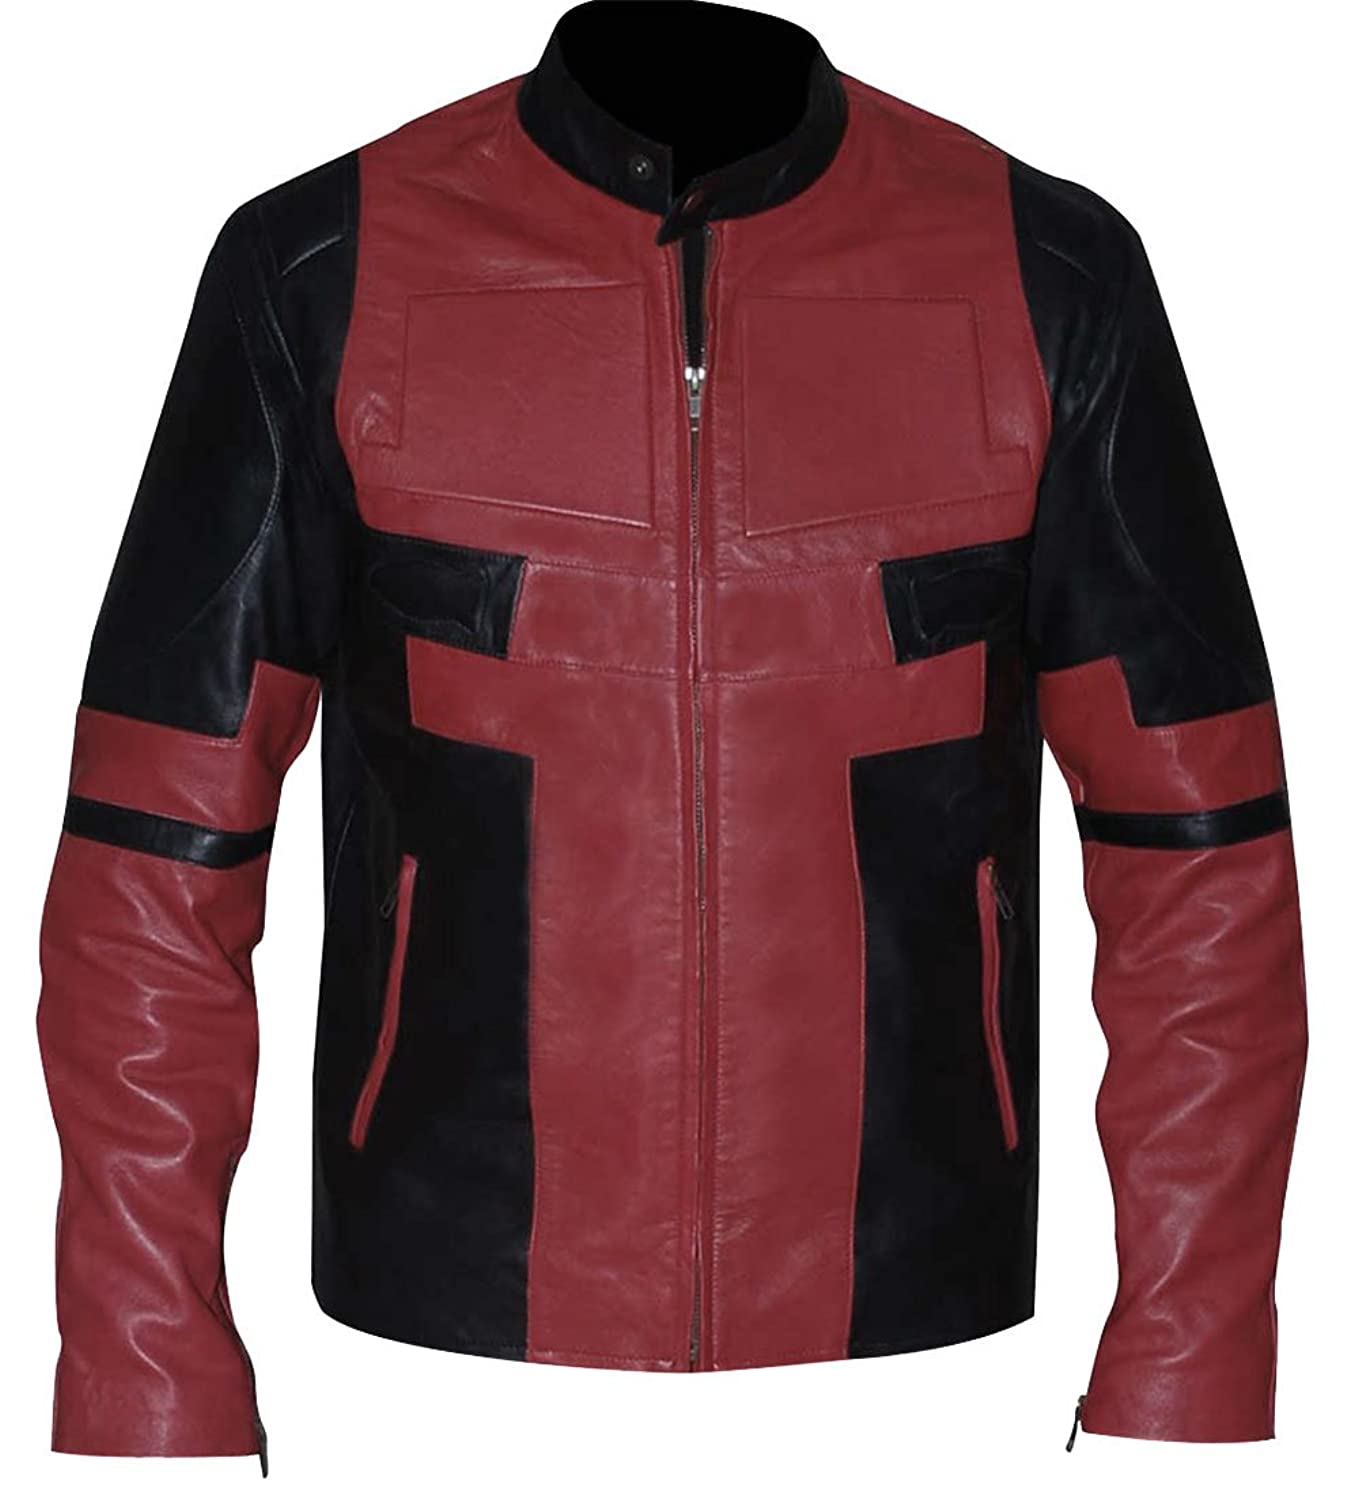 DeadPool Ryan Reynolds Black and Red Leather Jacket